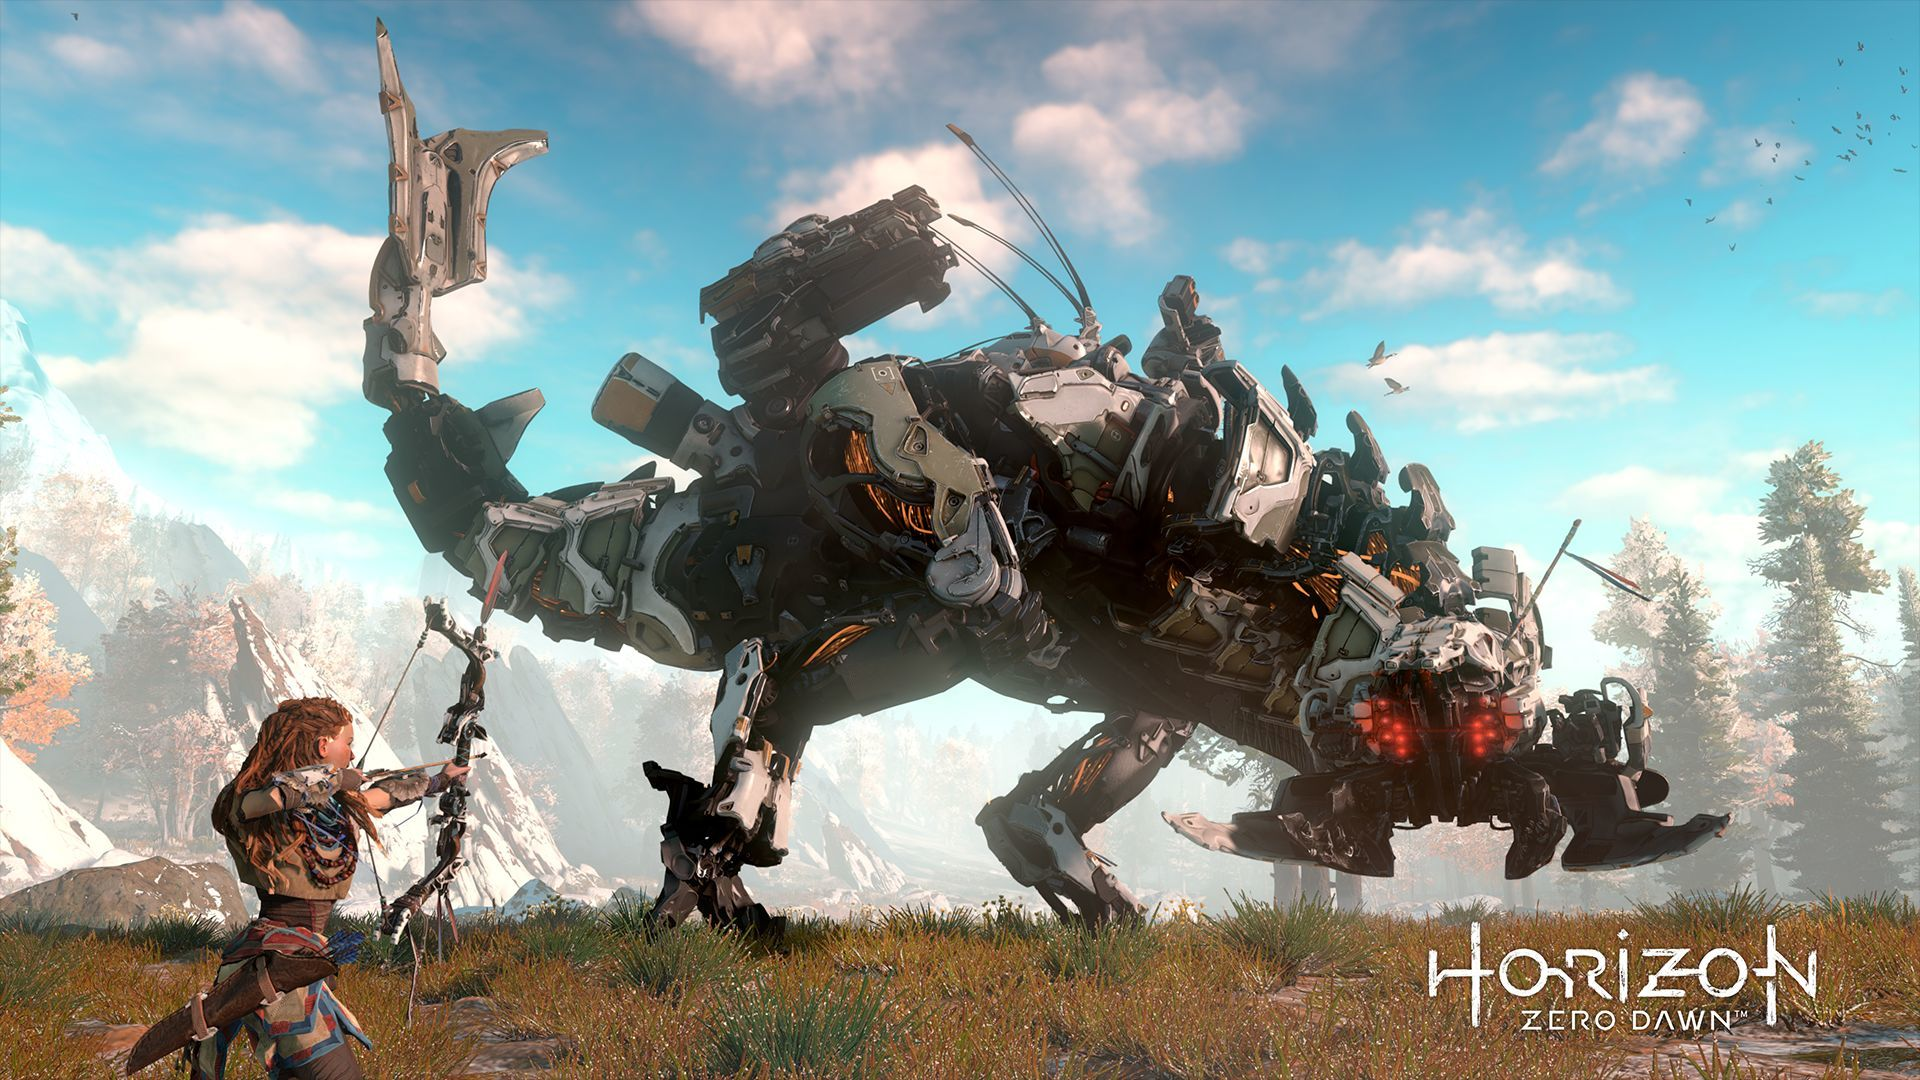 Horizon Zero Dawn in 4K anyone?